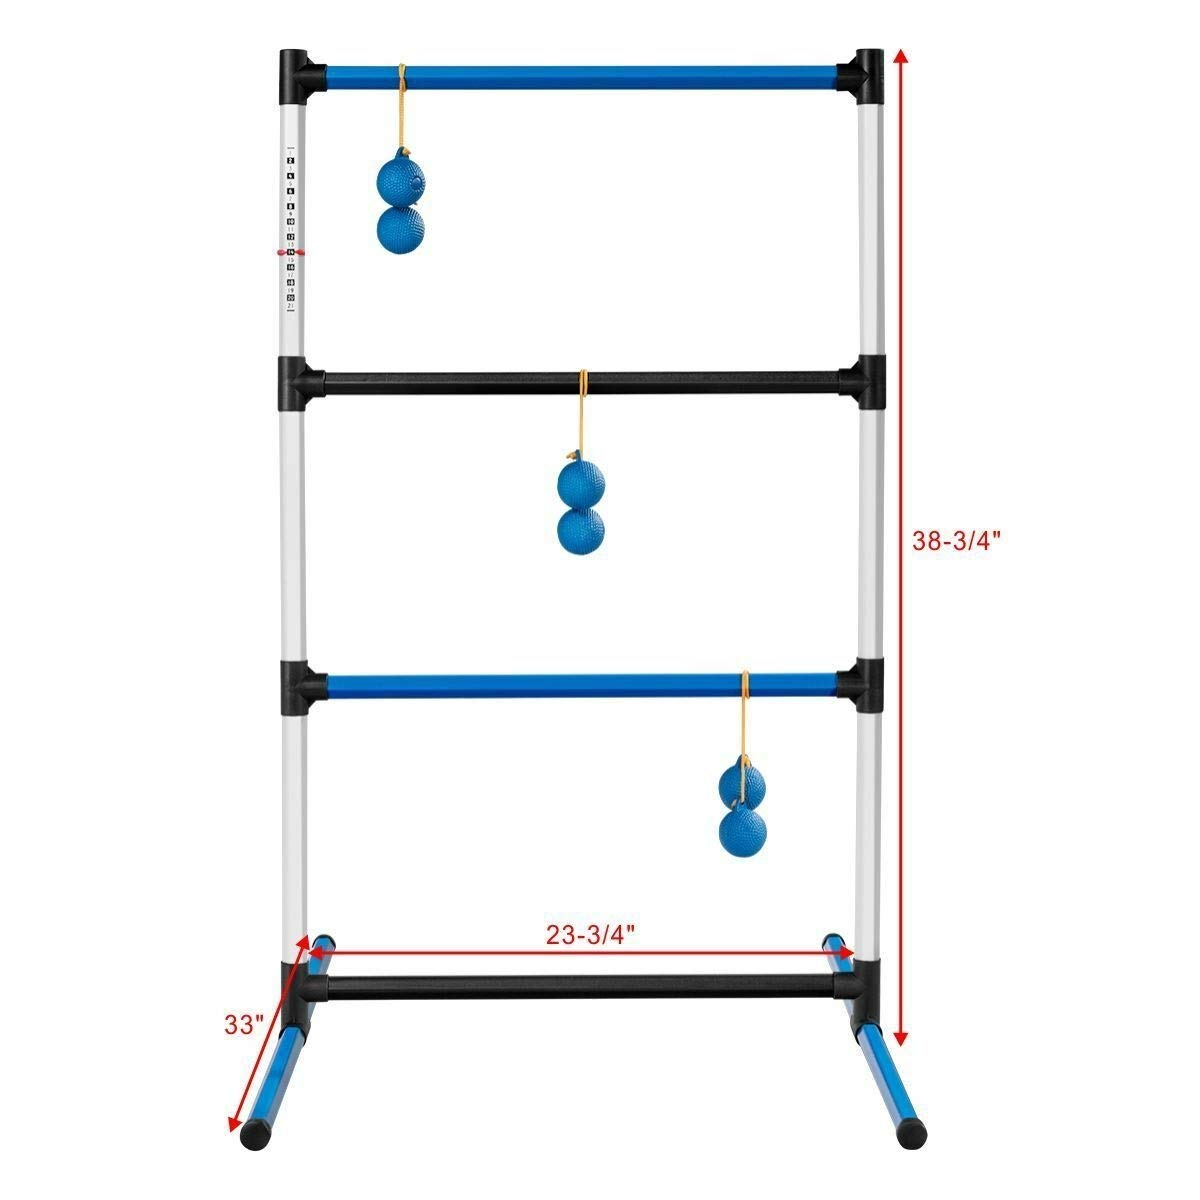 zwan Indoor Outdoor Portable Ladder Ball Toss Game Set with Bag with Ebook